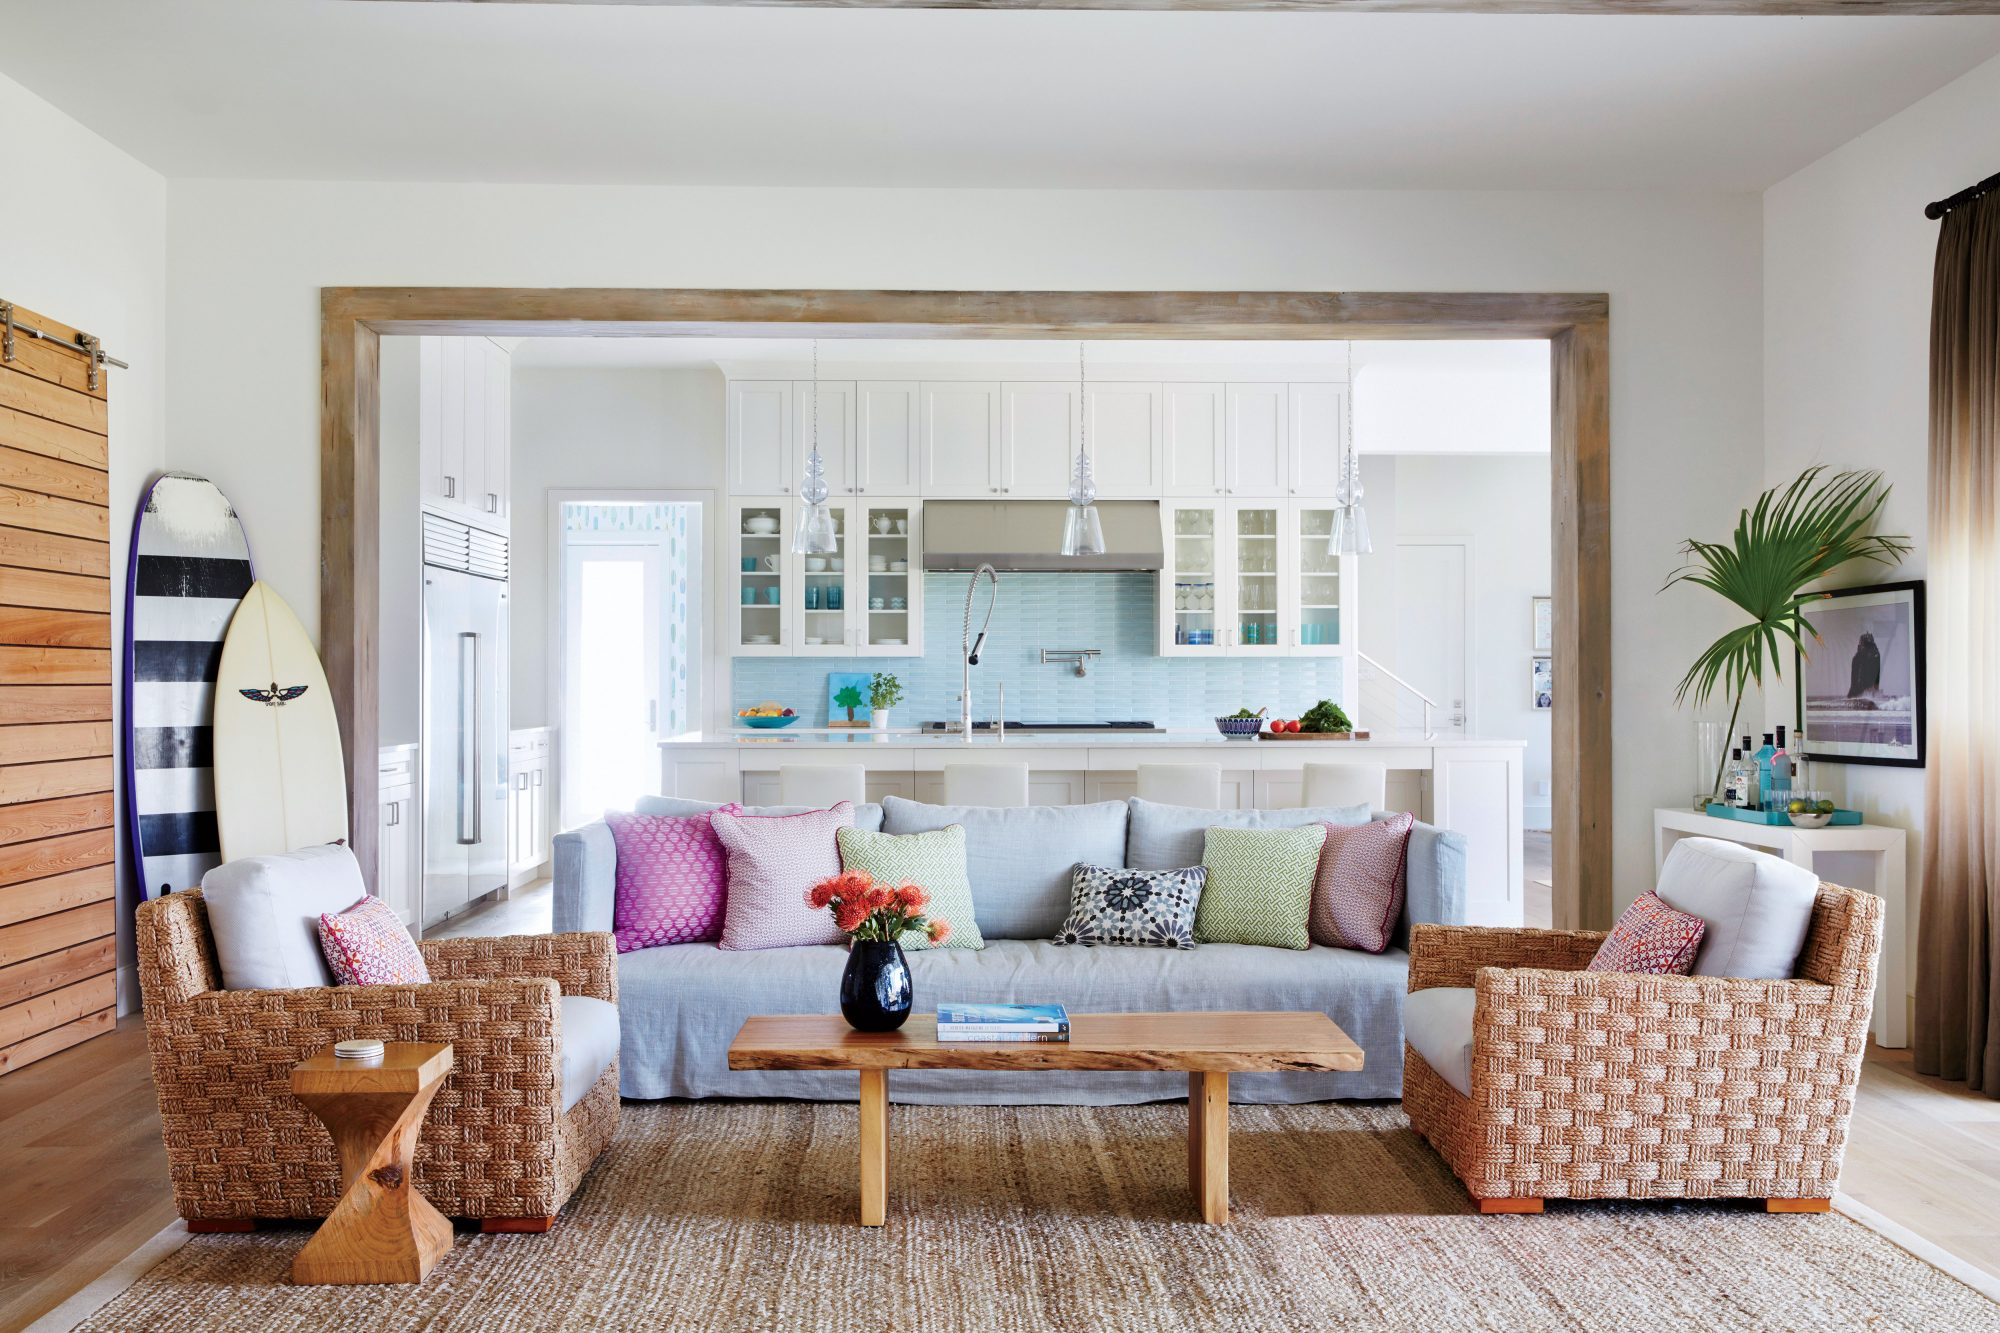 Inside, they opted for a central living hub, where broad pass-throughs between rooms keep the living room, kitchen, and breakfast nook visually connected. Rustic washed-pine trim frames the spaces and sets a laid-back vibe in line with their beachy locale